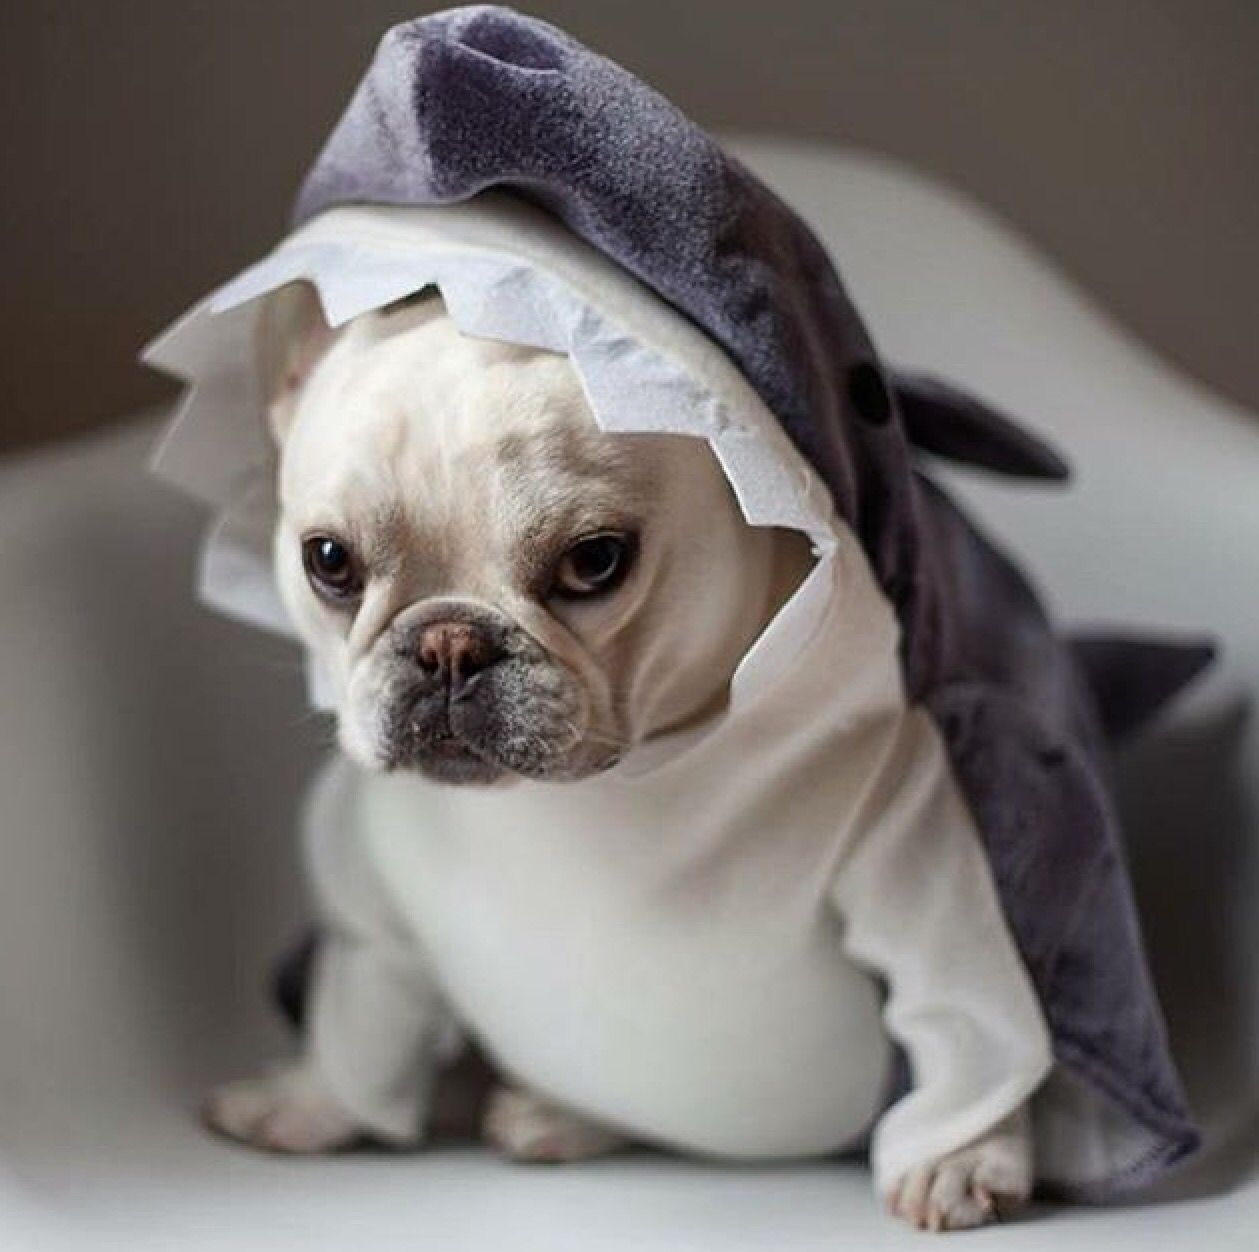 The grumpy cat has been officially dethroned. Dog shark